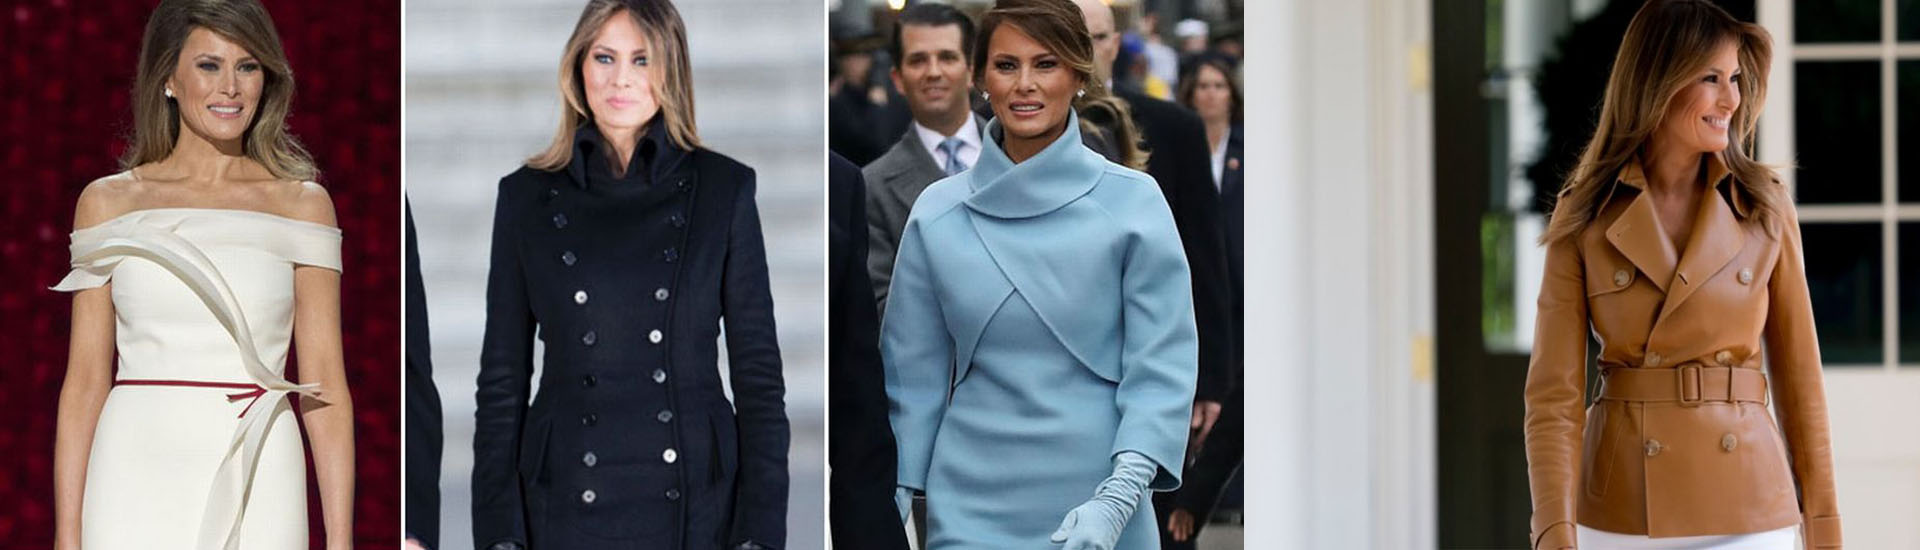 Melania Trump Fashion Icon